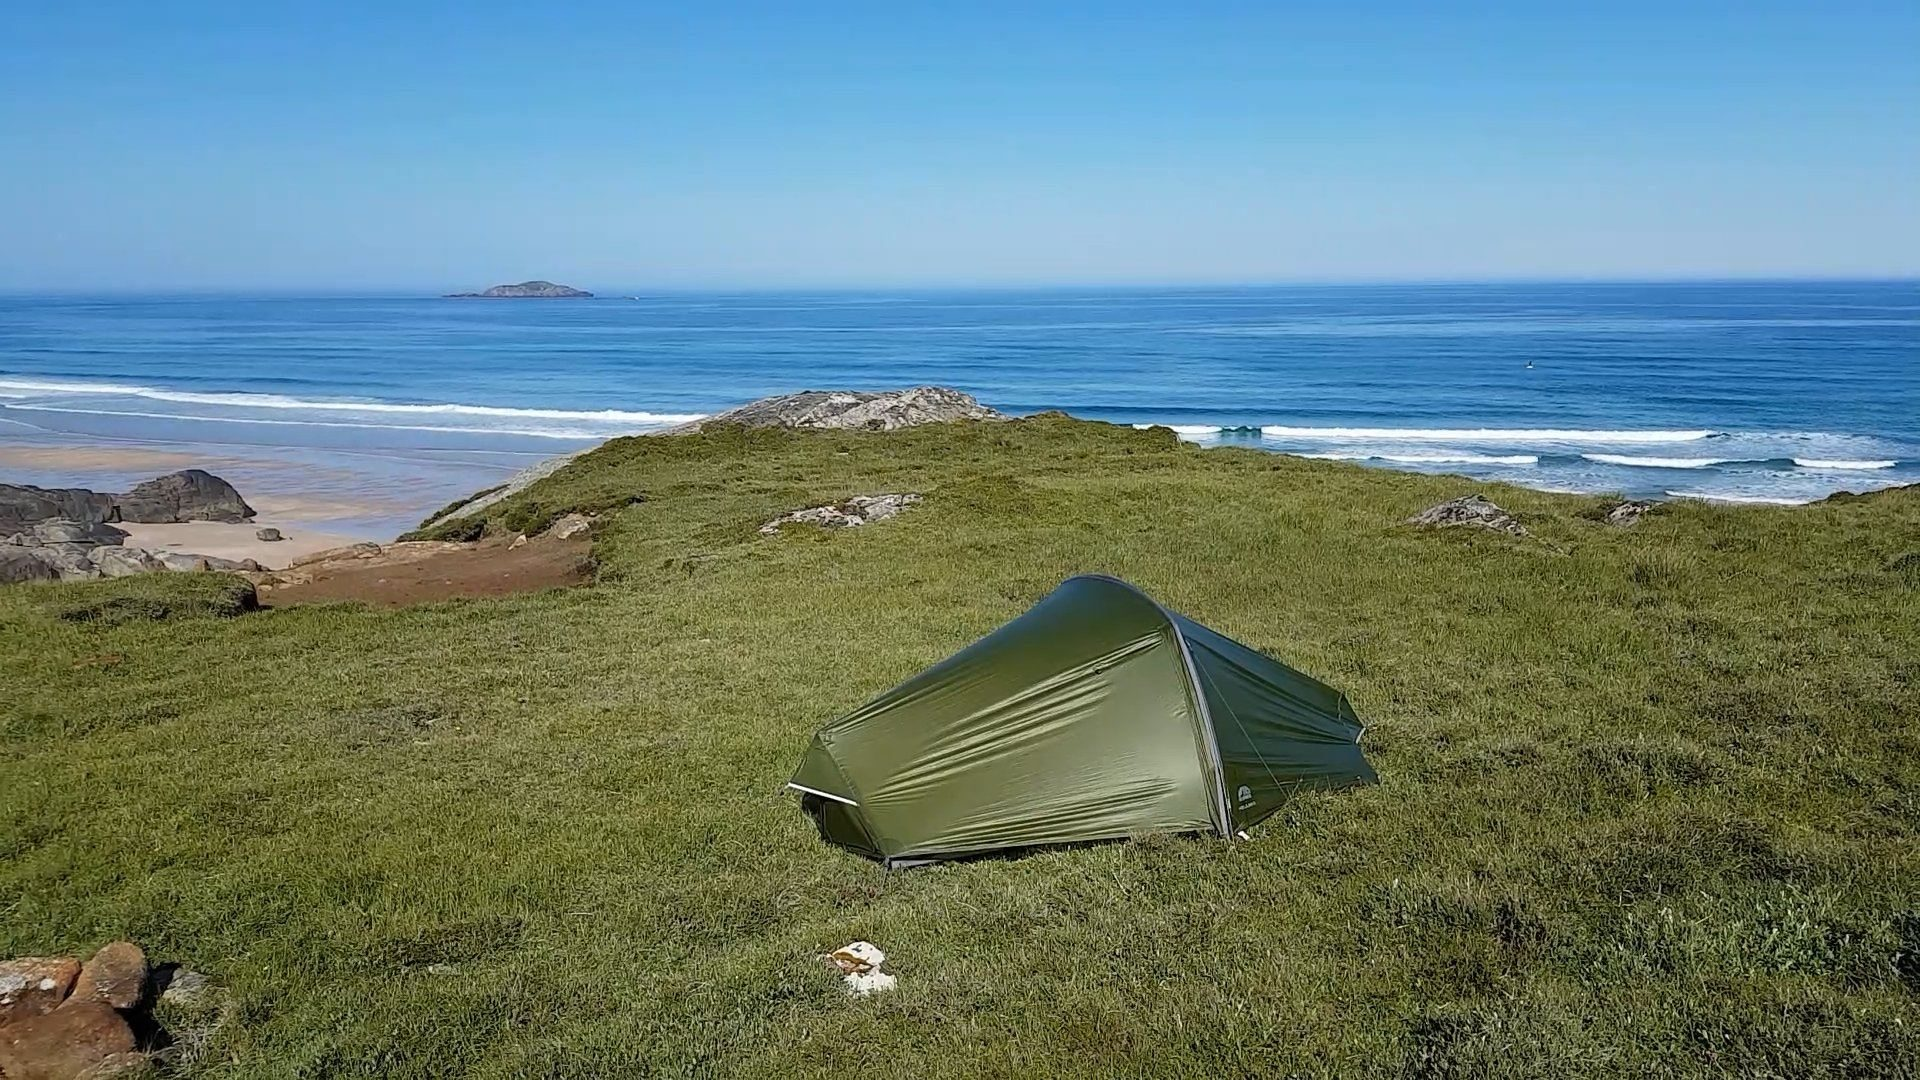 A lovely little wildcamping spot, with a view over the clear surf rolling in to Sandwood Bay